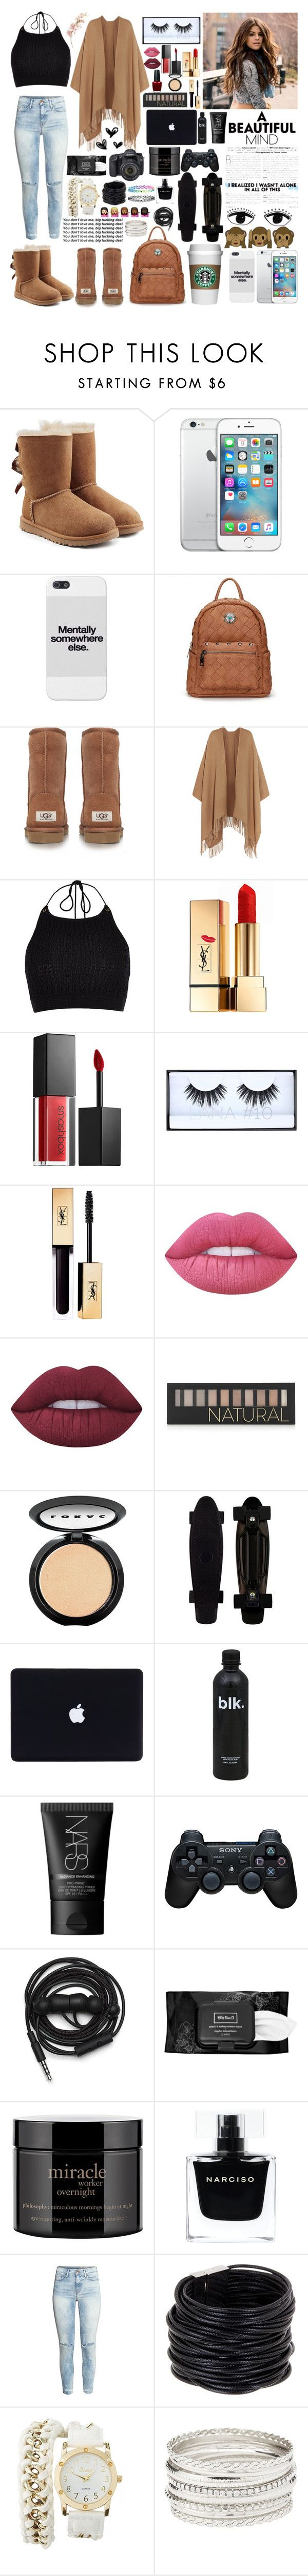 """~You don't love me,big fu*king deal."" by pink-maja ❤ liked on Polyvore featuring UGG, UGG Australia, Acne Studios, River Island, Yves Saint Laurent, Smashbox, Huda Beauty, Lime Crime, Forever 21 and LORAC"